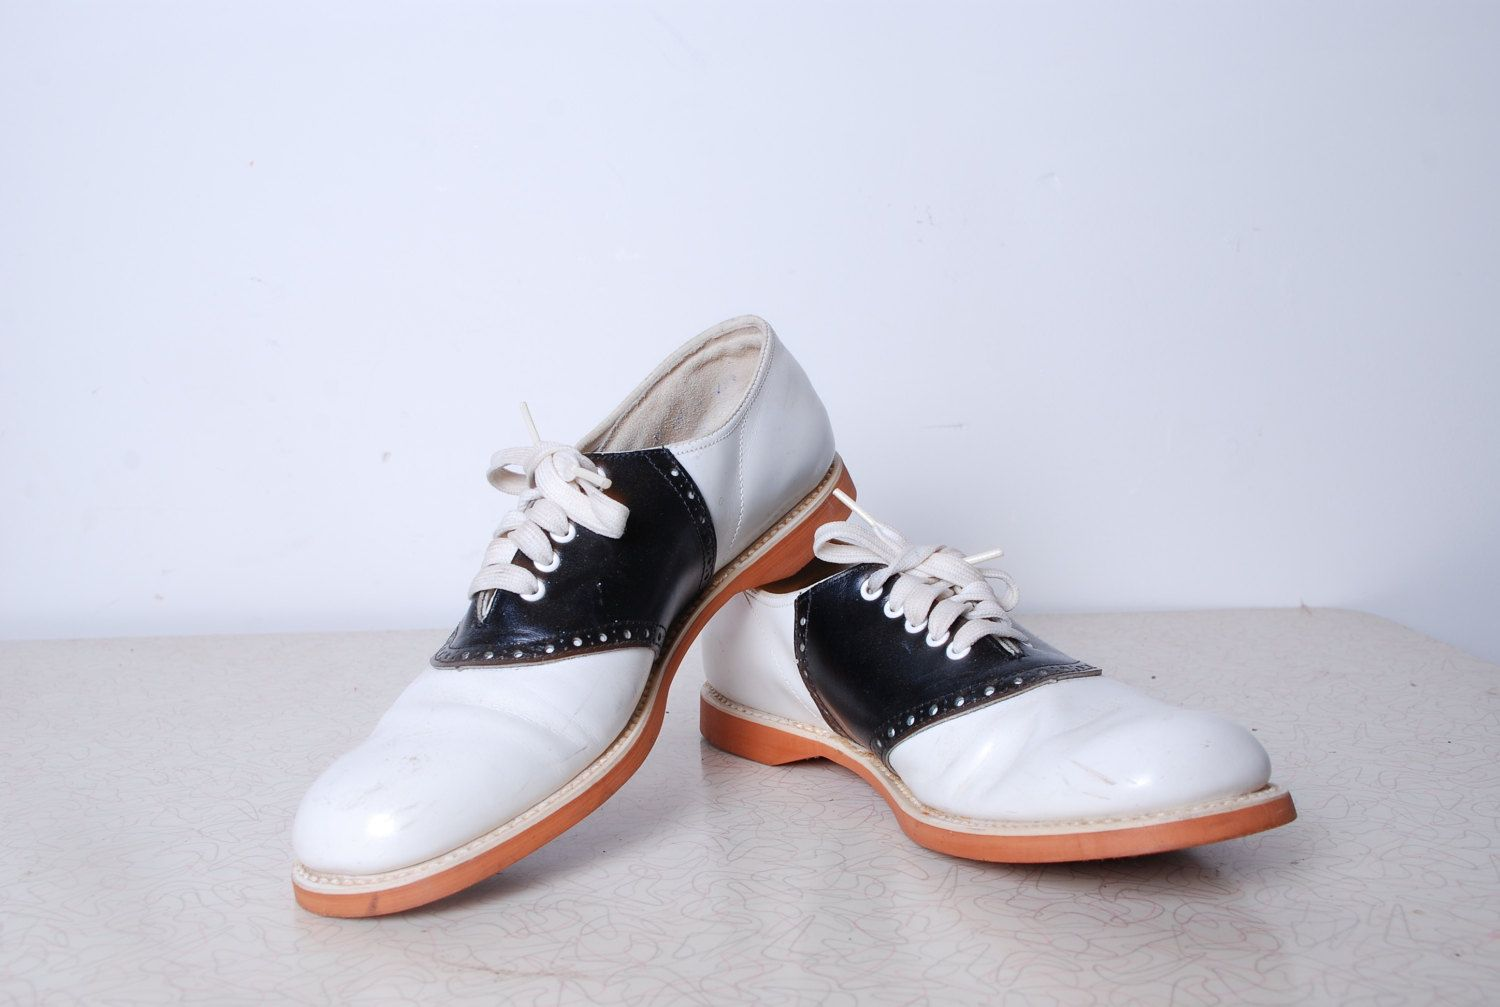 70s ladies 8.5 saddle shoes black and white lace up uniform classic iconic  school girl loafers womens vintage accessories prep 50s Barefoot